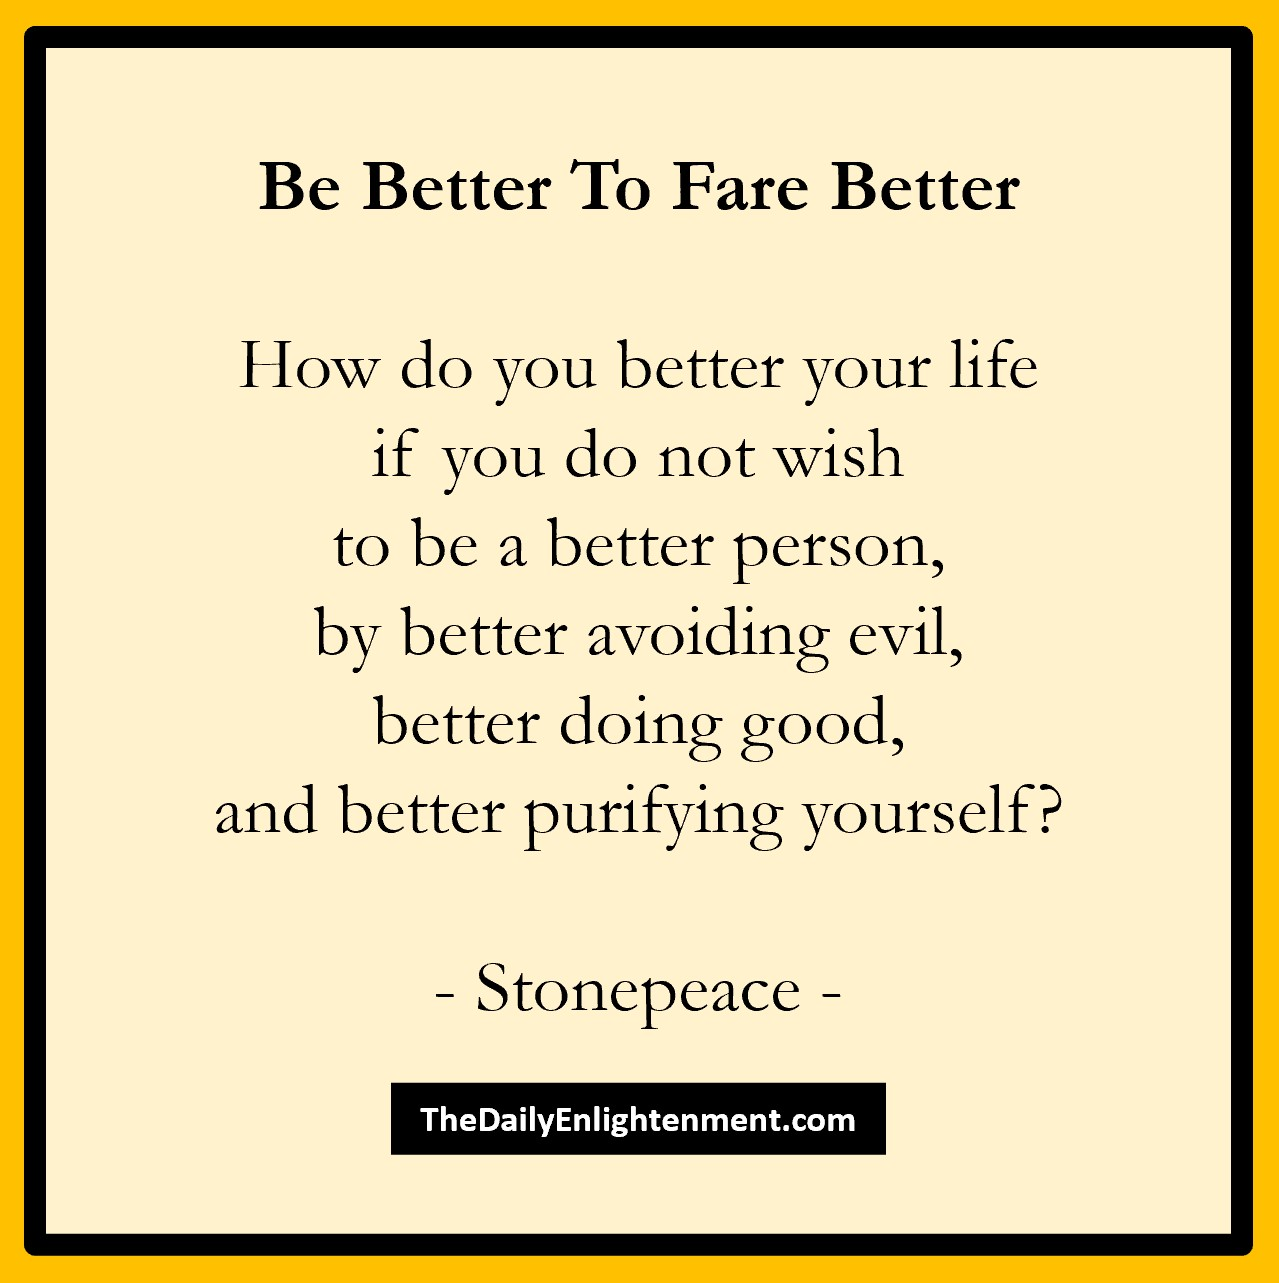 Be Better To Fare Better